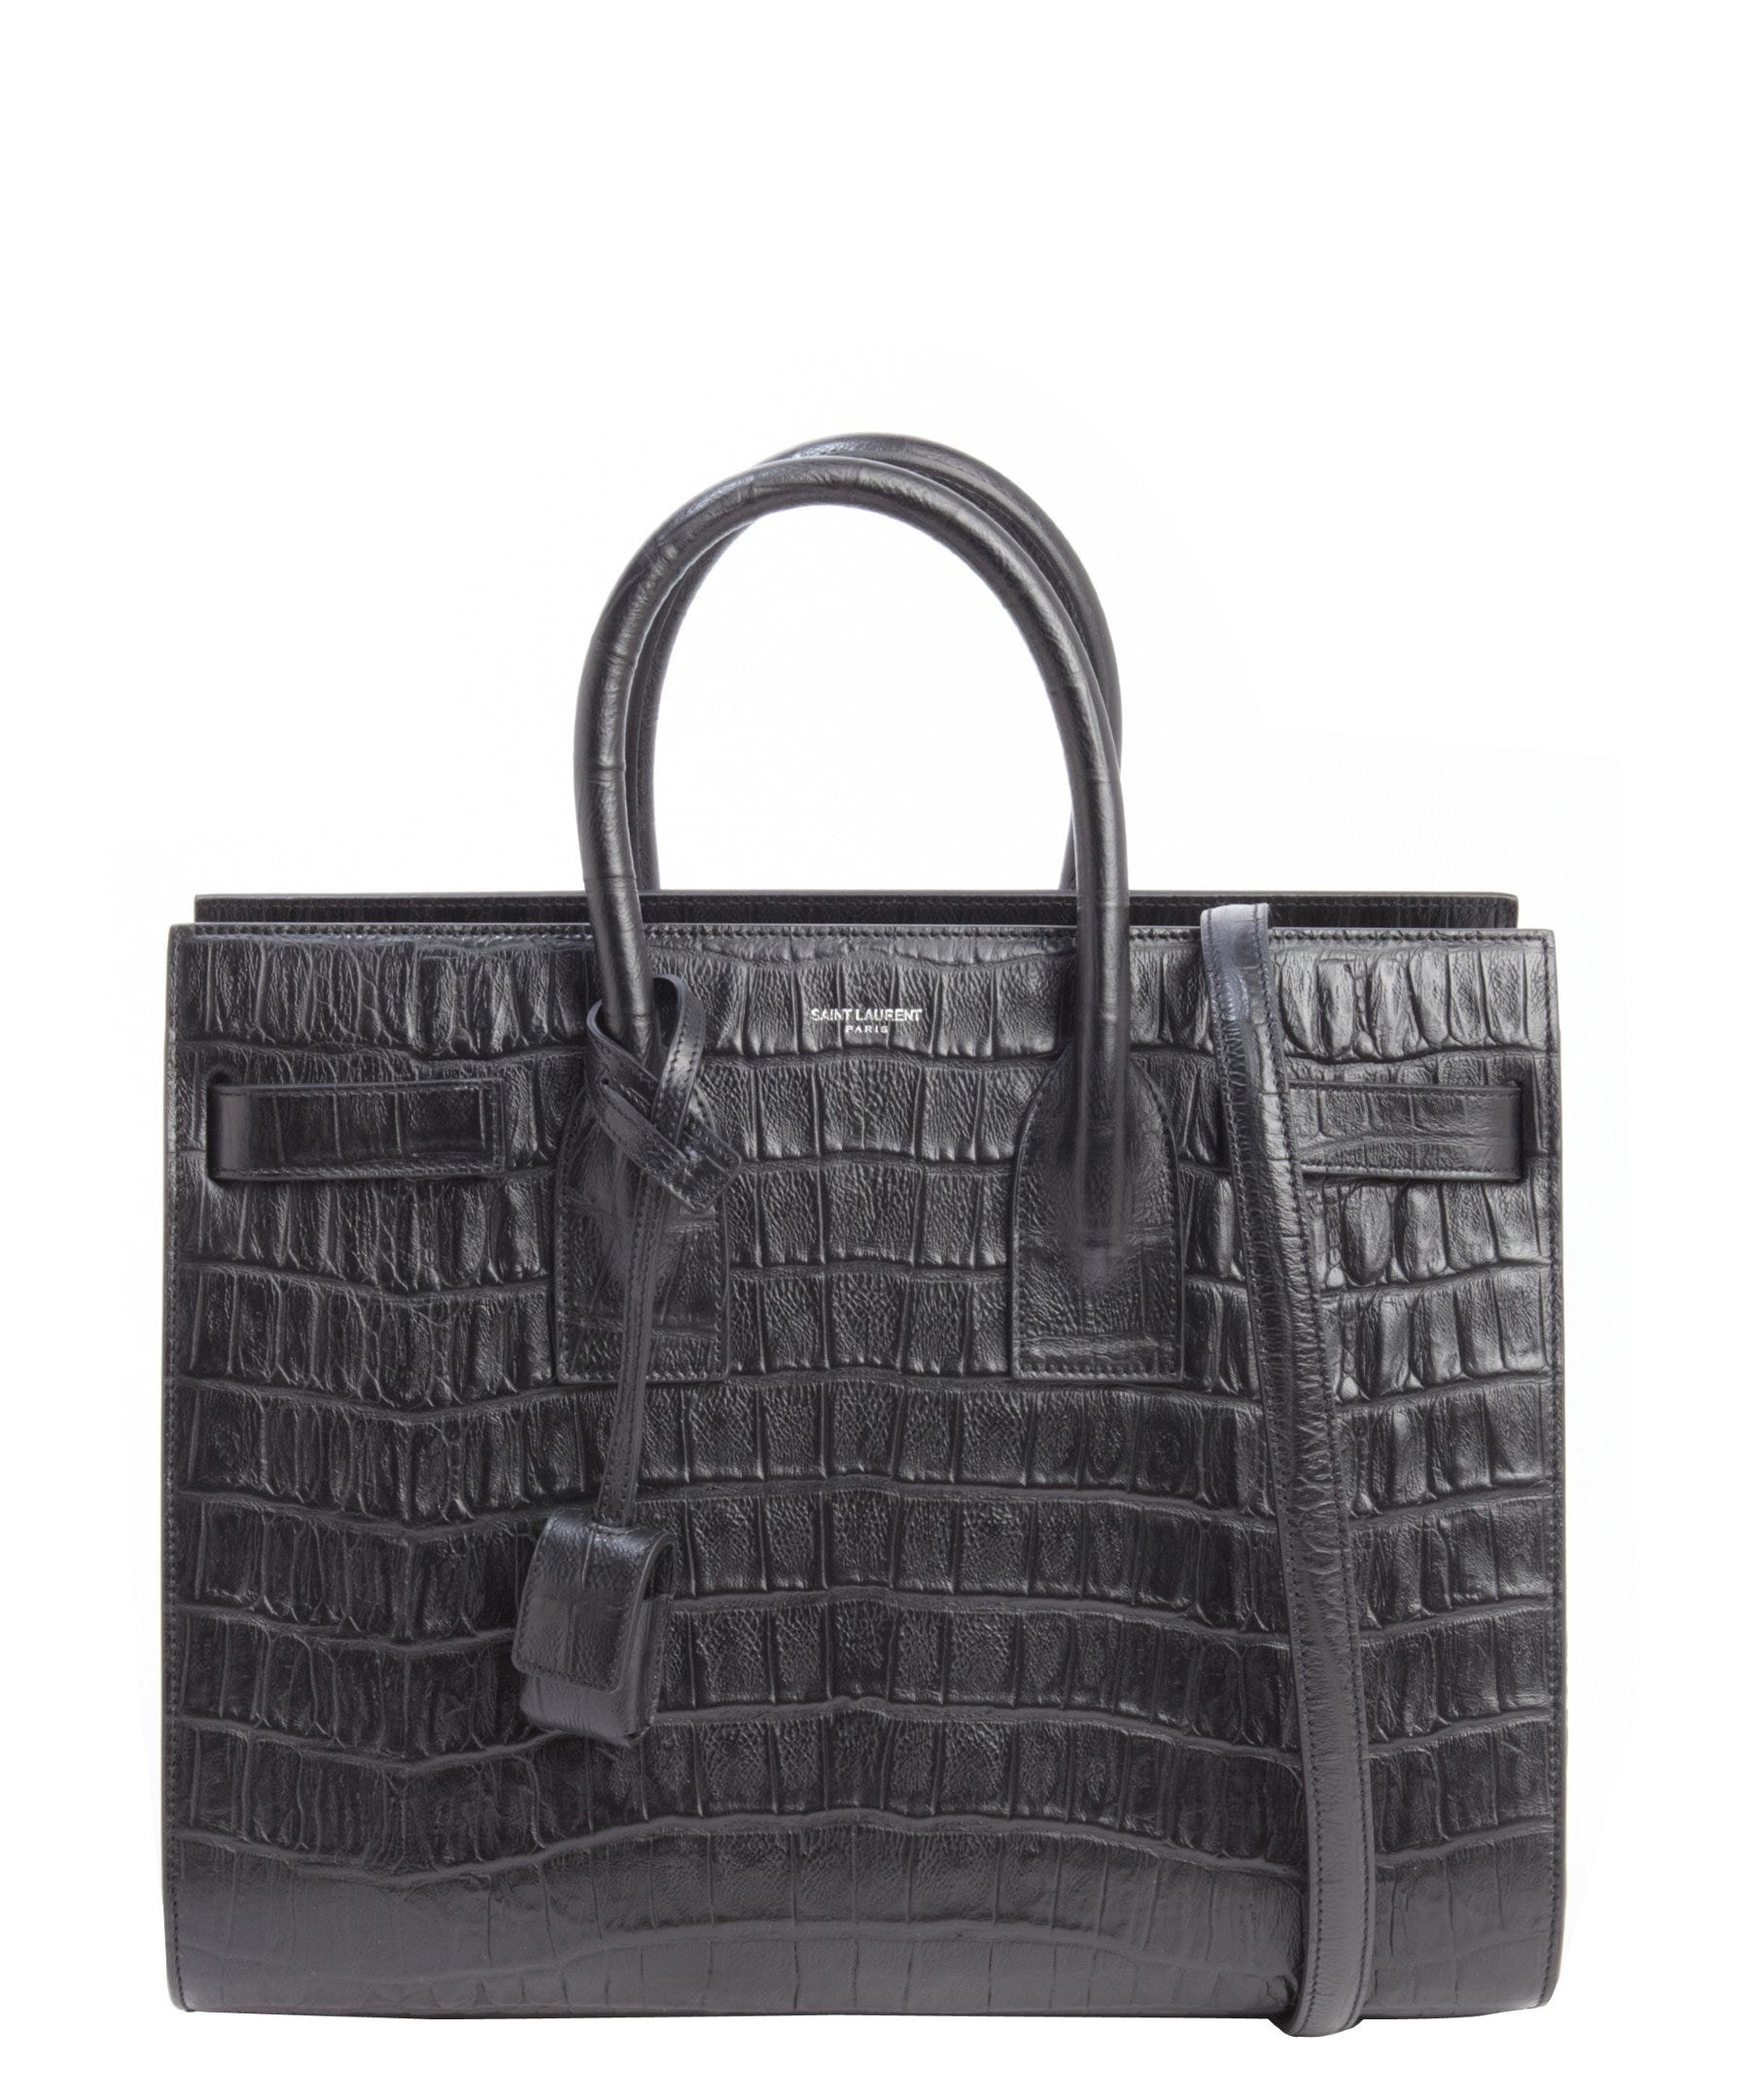 158369cab9 13 Killer Designer Bags You Could Win For FREE